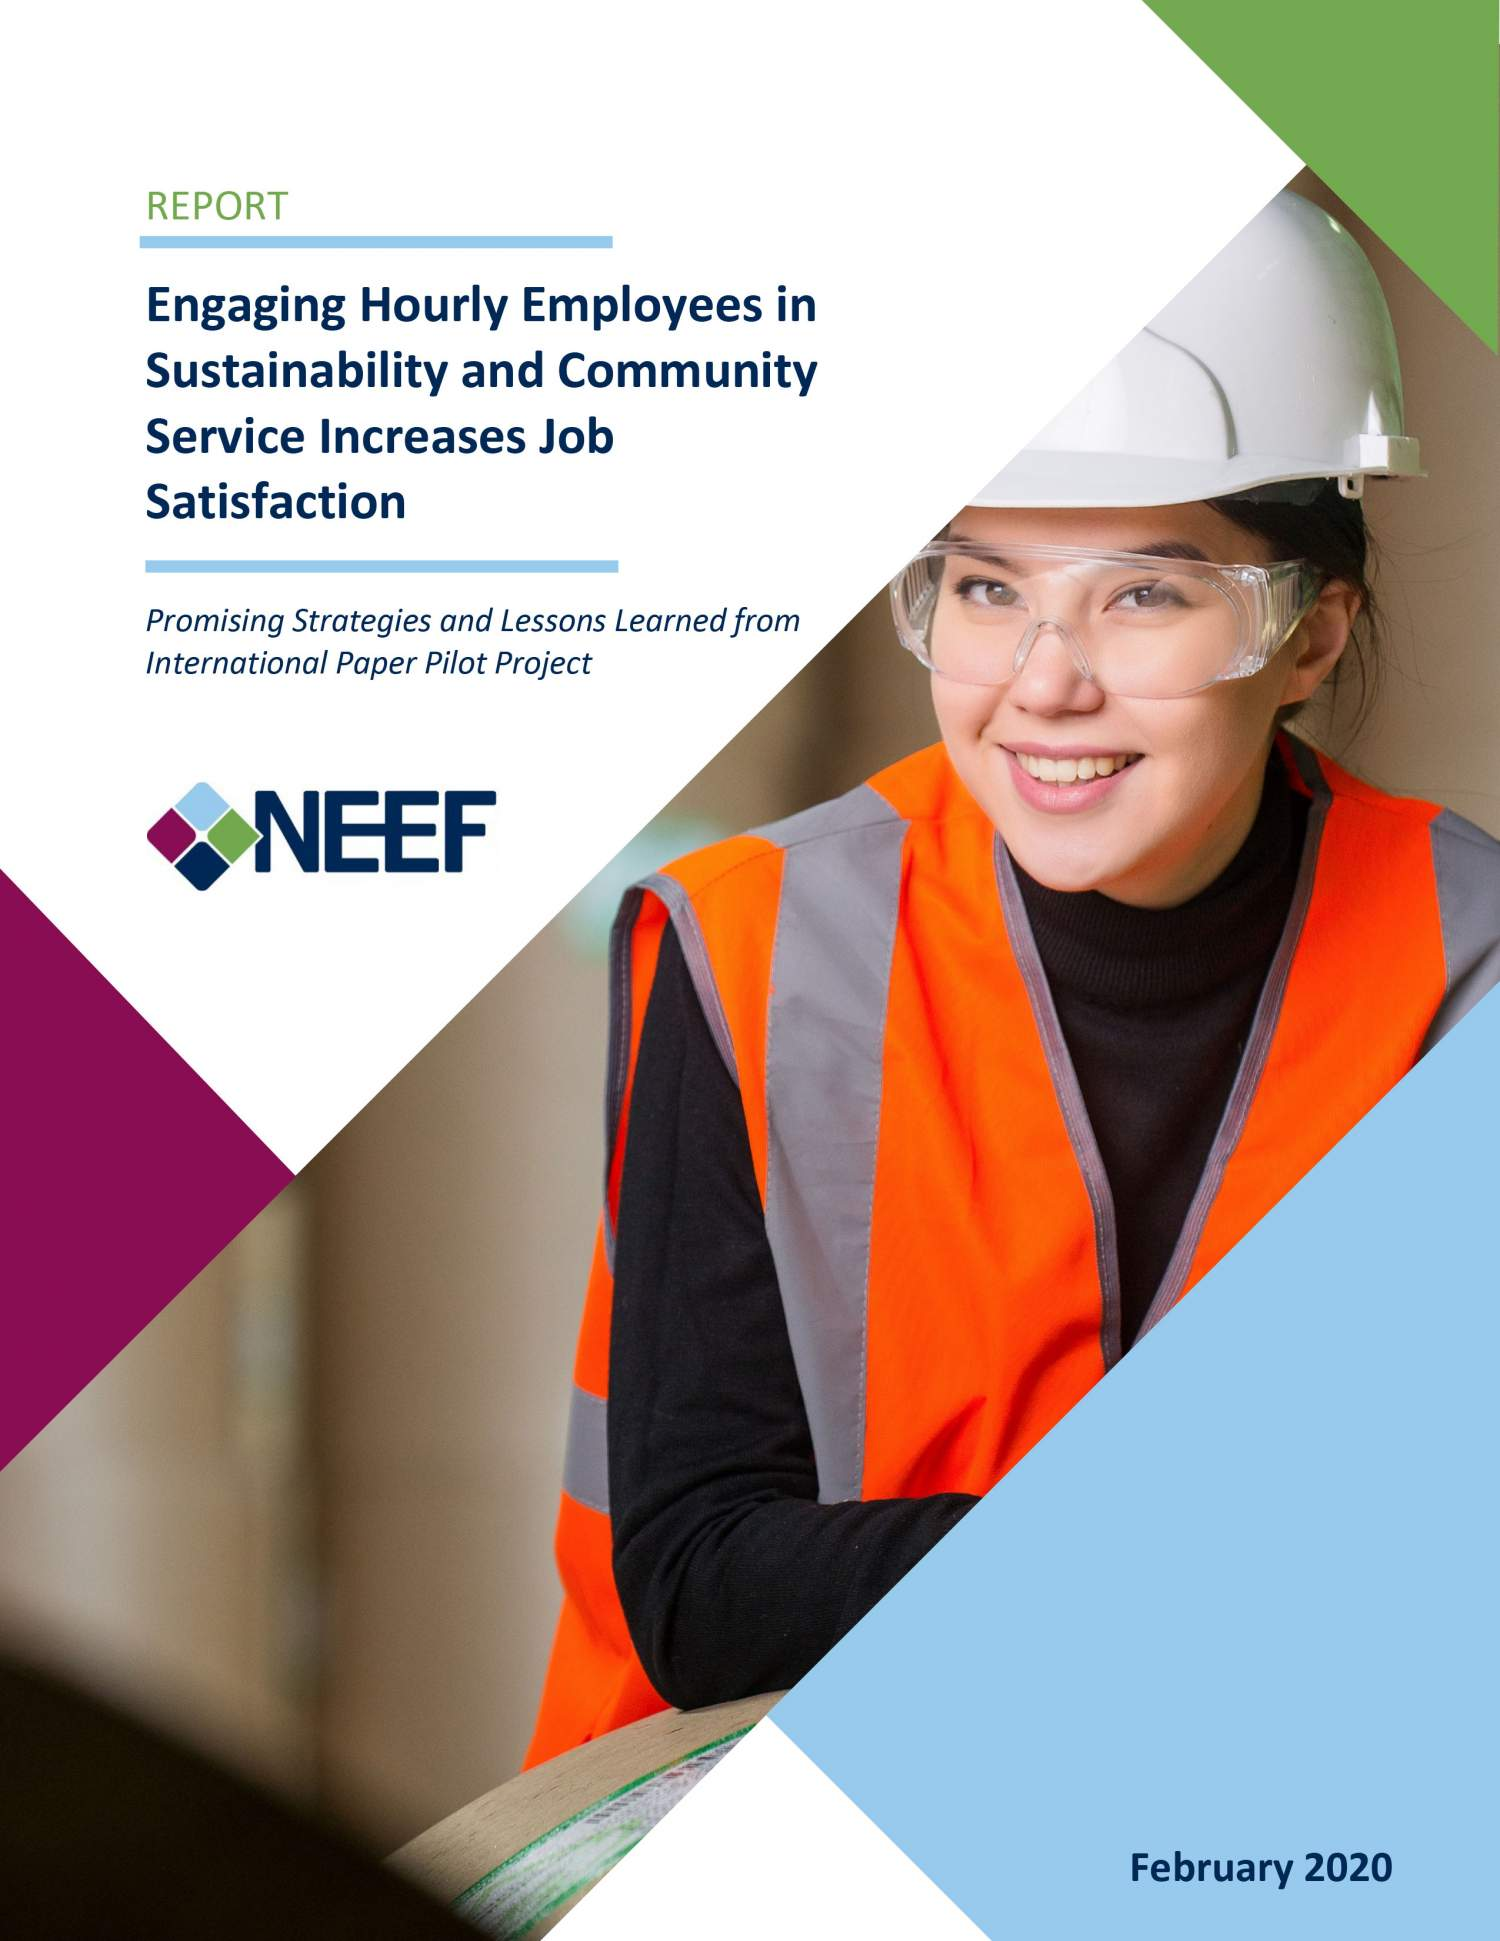 Engaging Hourly Employees in Sustainability and Community Service Increases Job Satisfaction